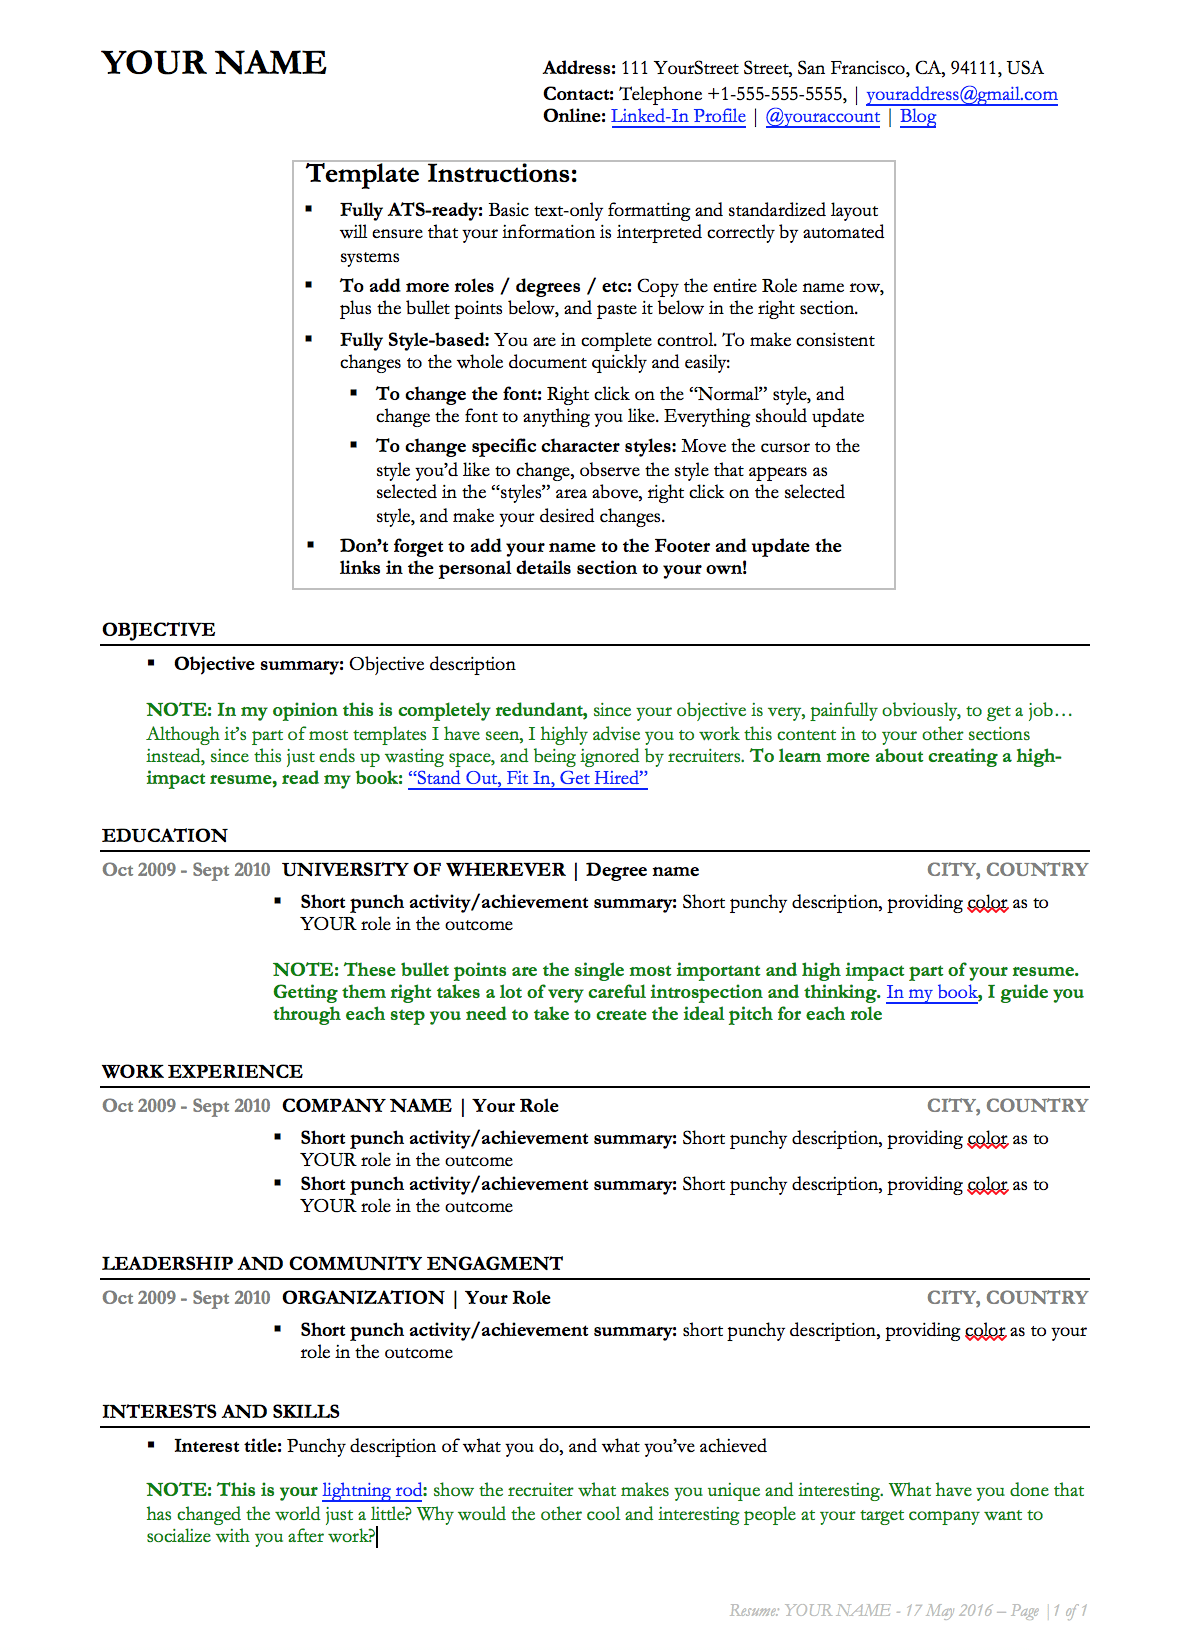 Steps To Make A Resume 4 Stand Out With A Resume Hyper Tailored For Every Job